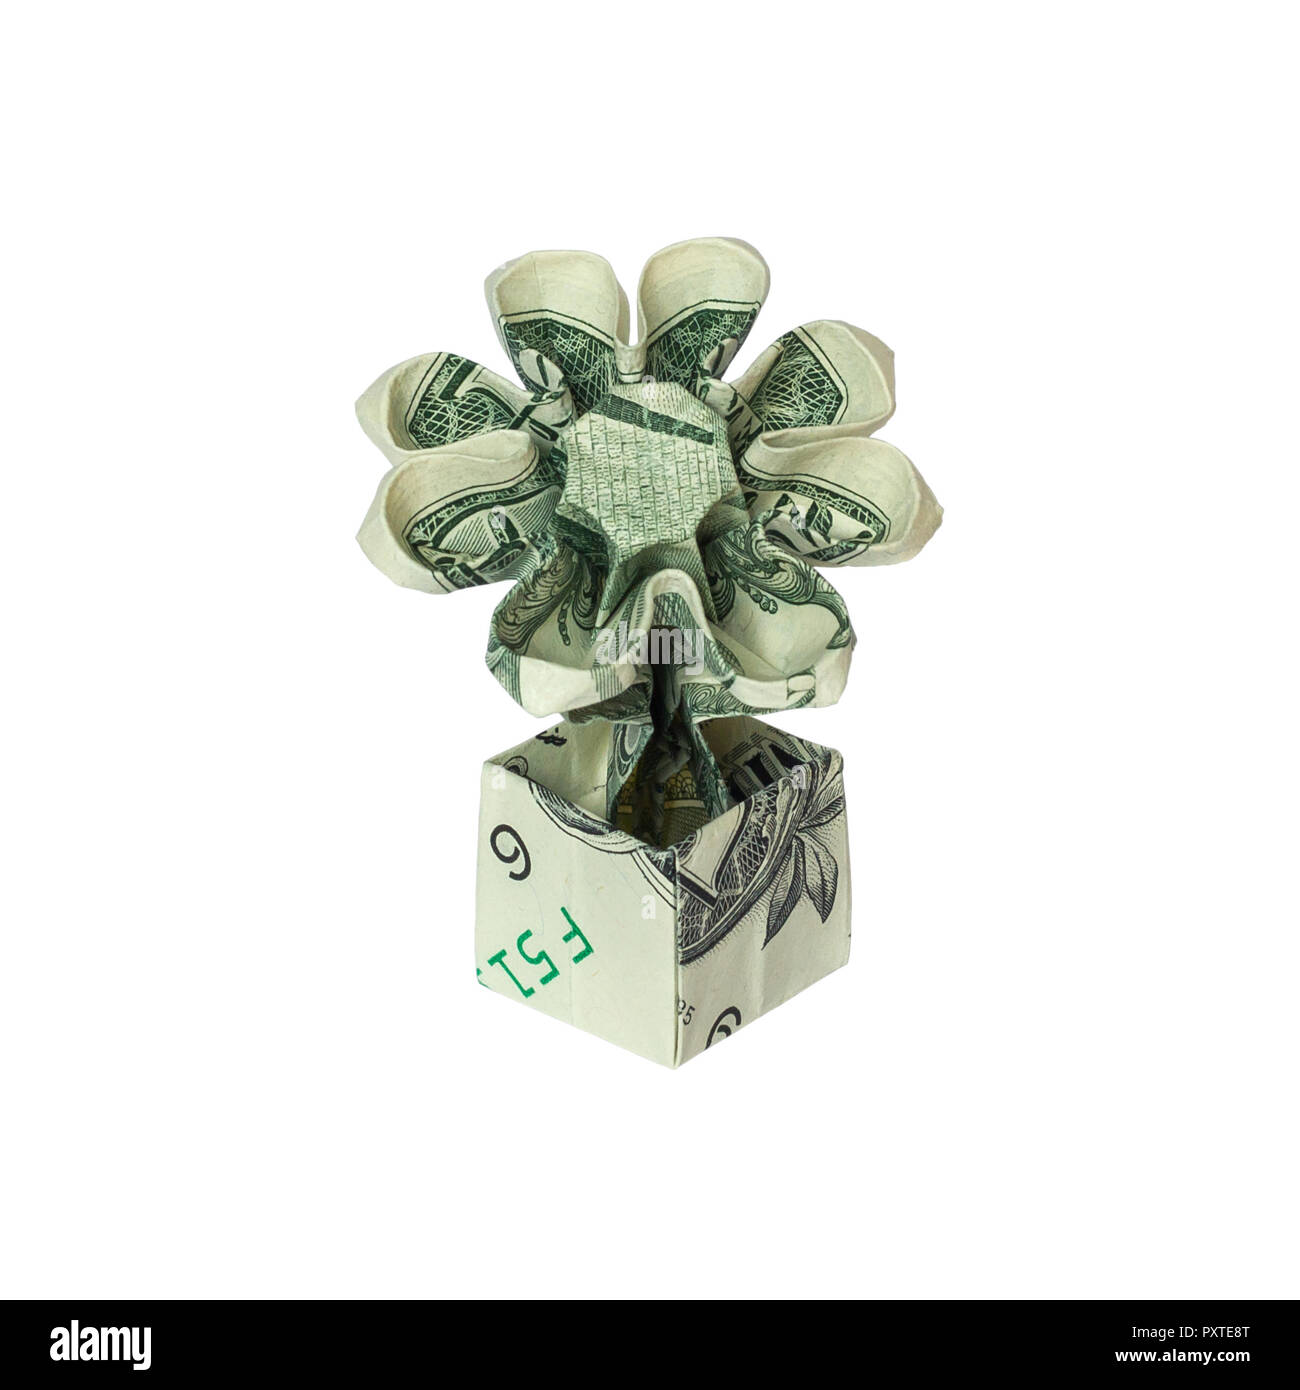 Money Origami Flower In Pot Folded With Real One Dollar Bill